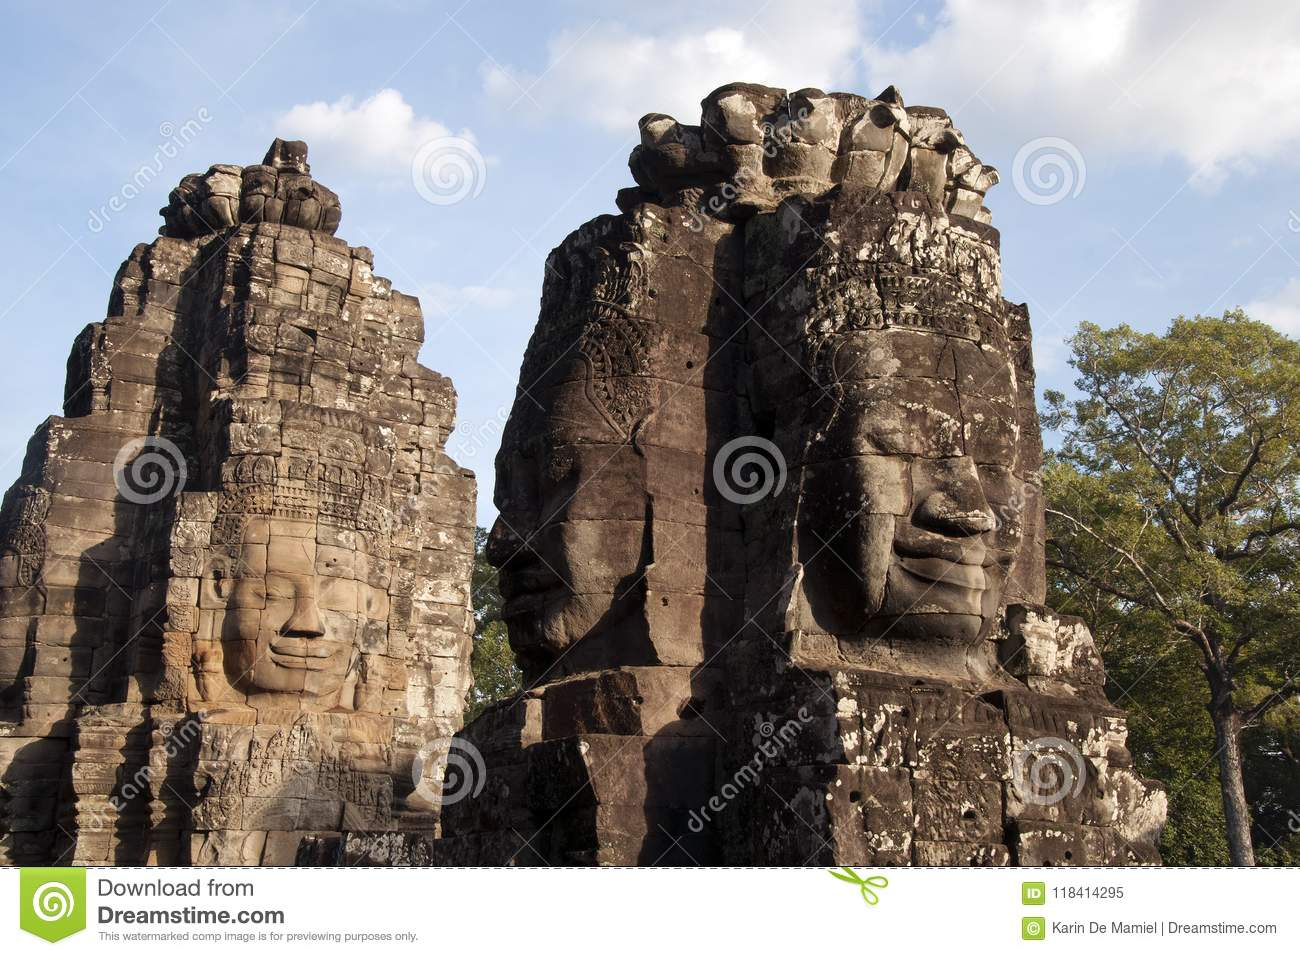 Anthropomorphic faces carved into stone at the Bayon Wat in late afternoon light, a 12th century temple within the Angkor Thom com